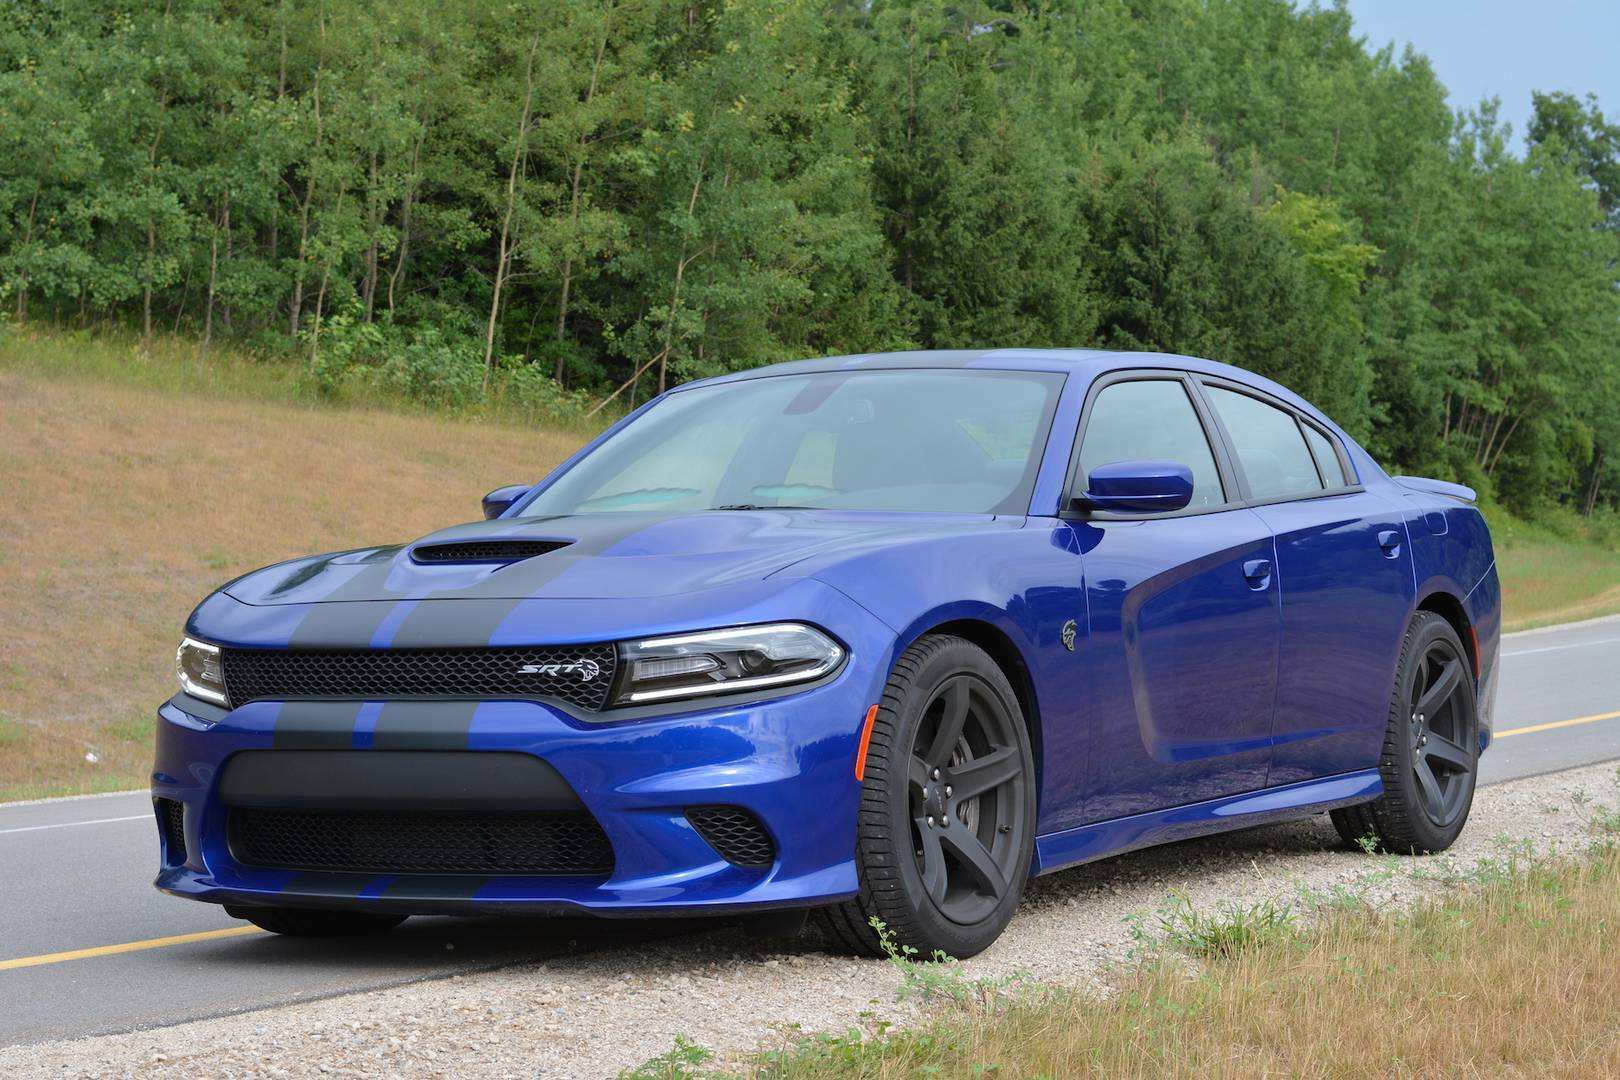 42 Best Review Best Release Date For 2019 Dodge Charger Price And Review First Drive for Best Release Date For 2019 Dodge Charger Price And Review